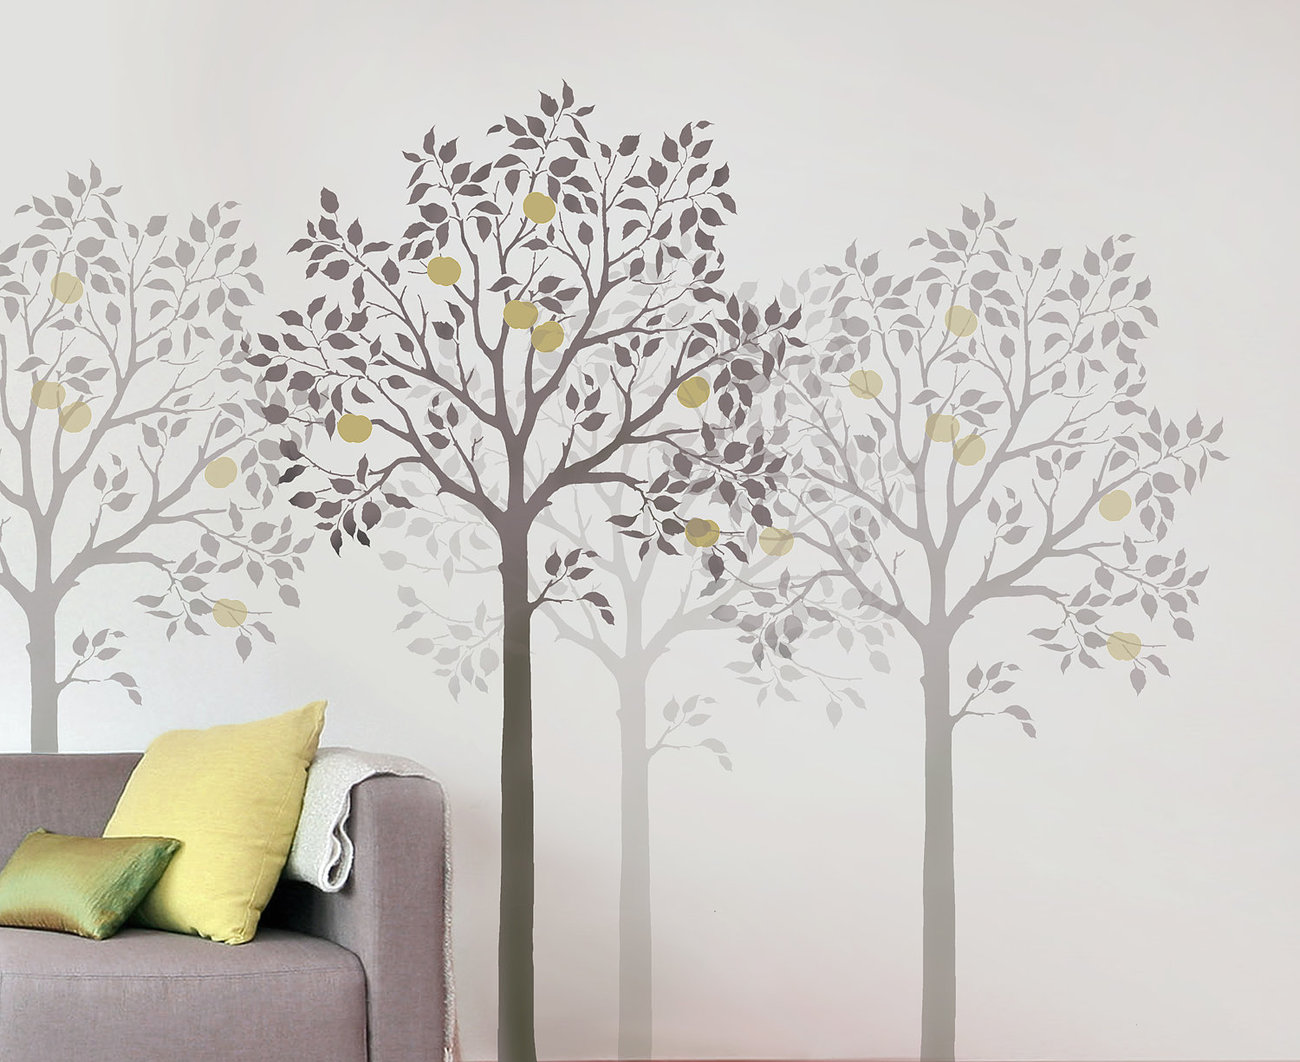 Large Painting Stencils For Walls : Large fruit tree stencil easy reusable wall stencils for